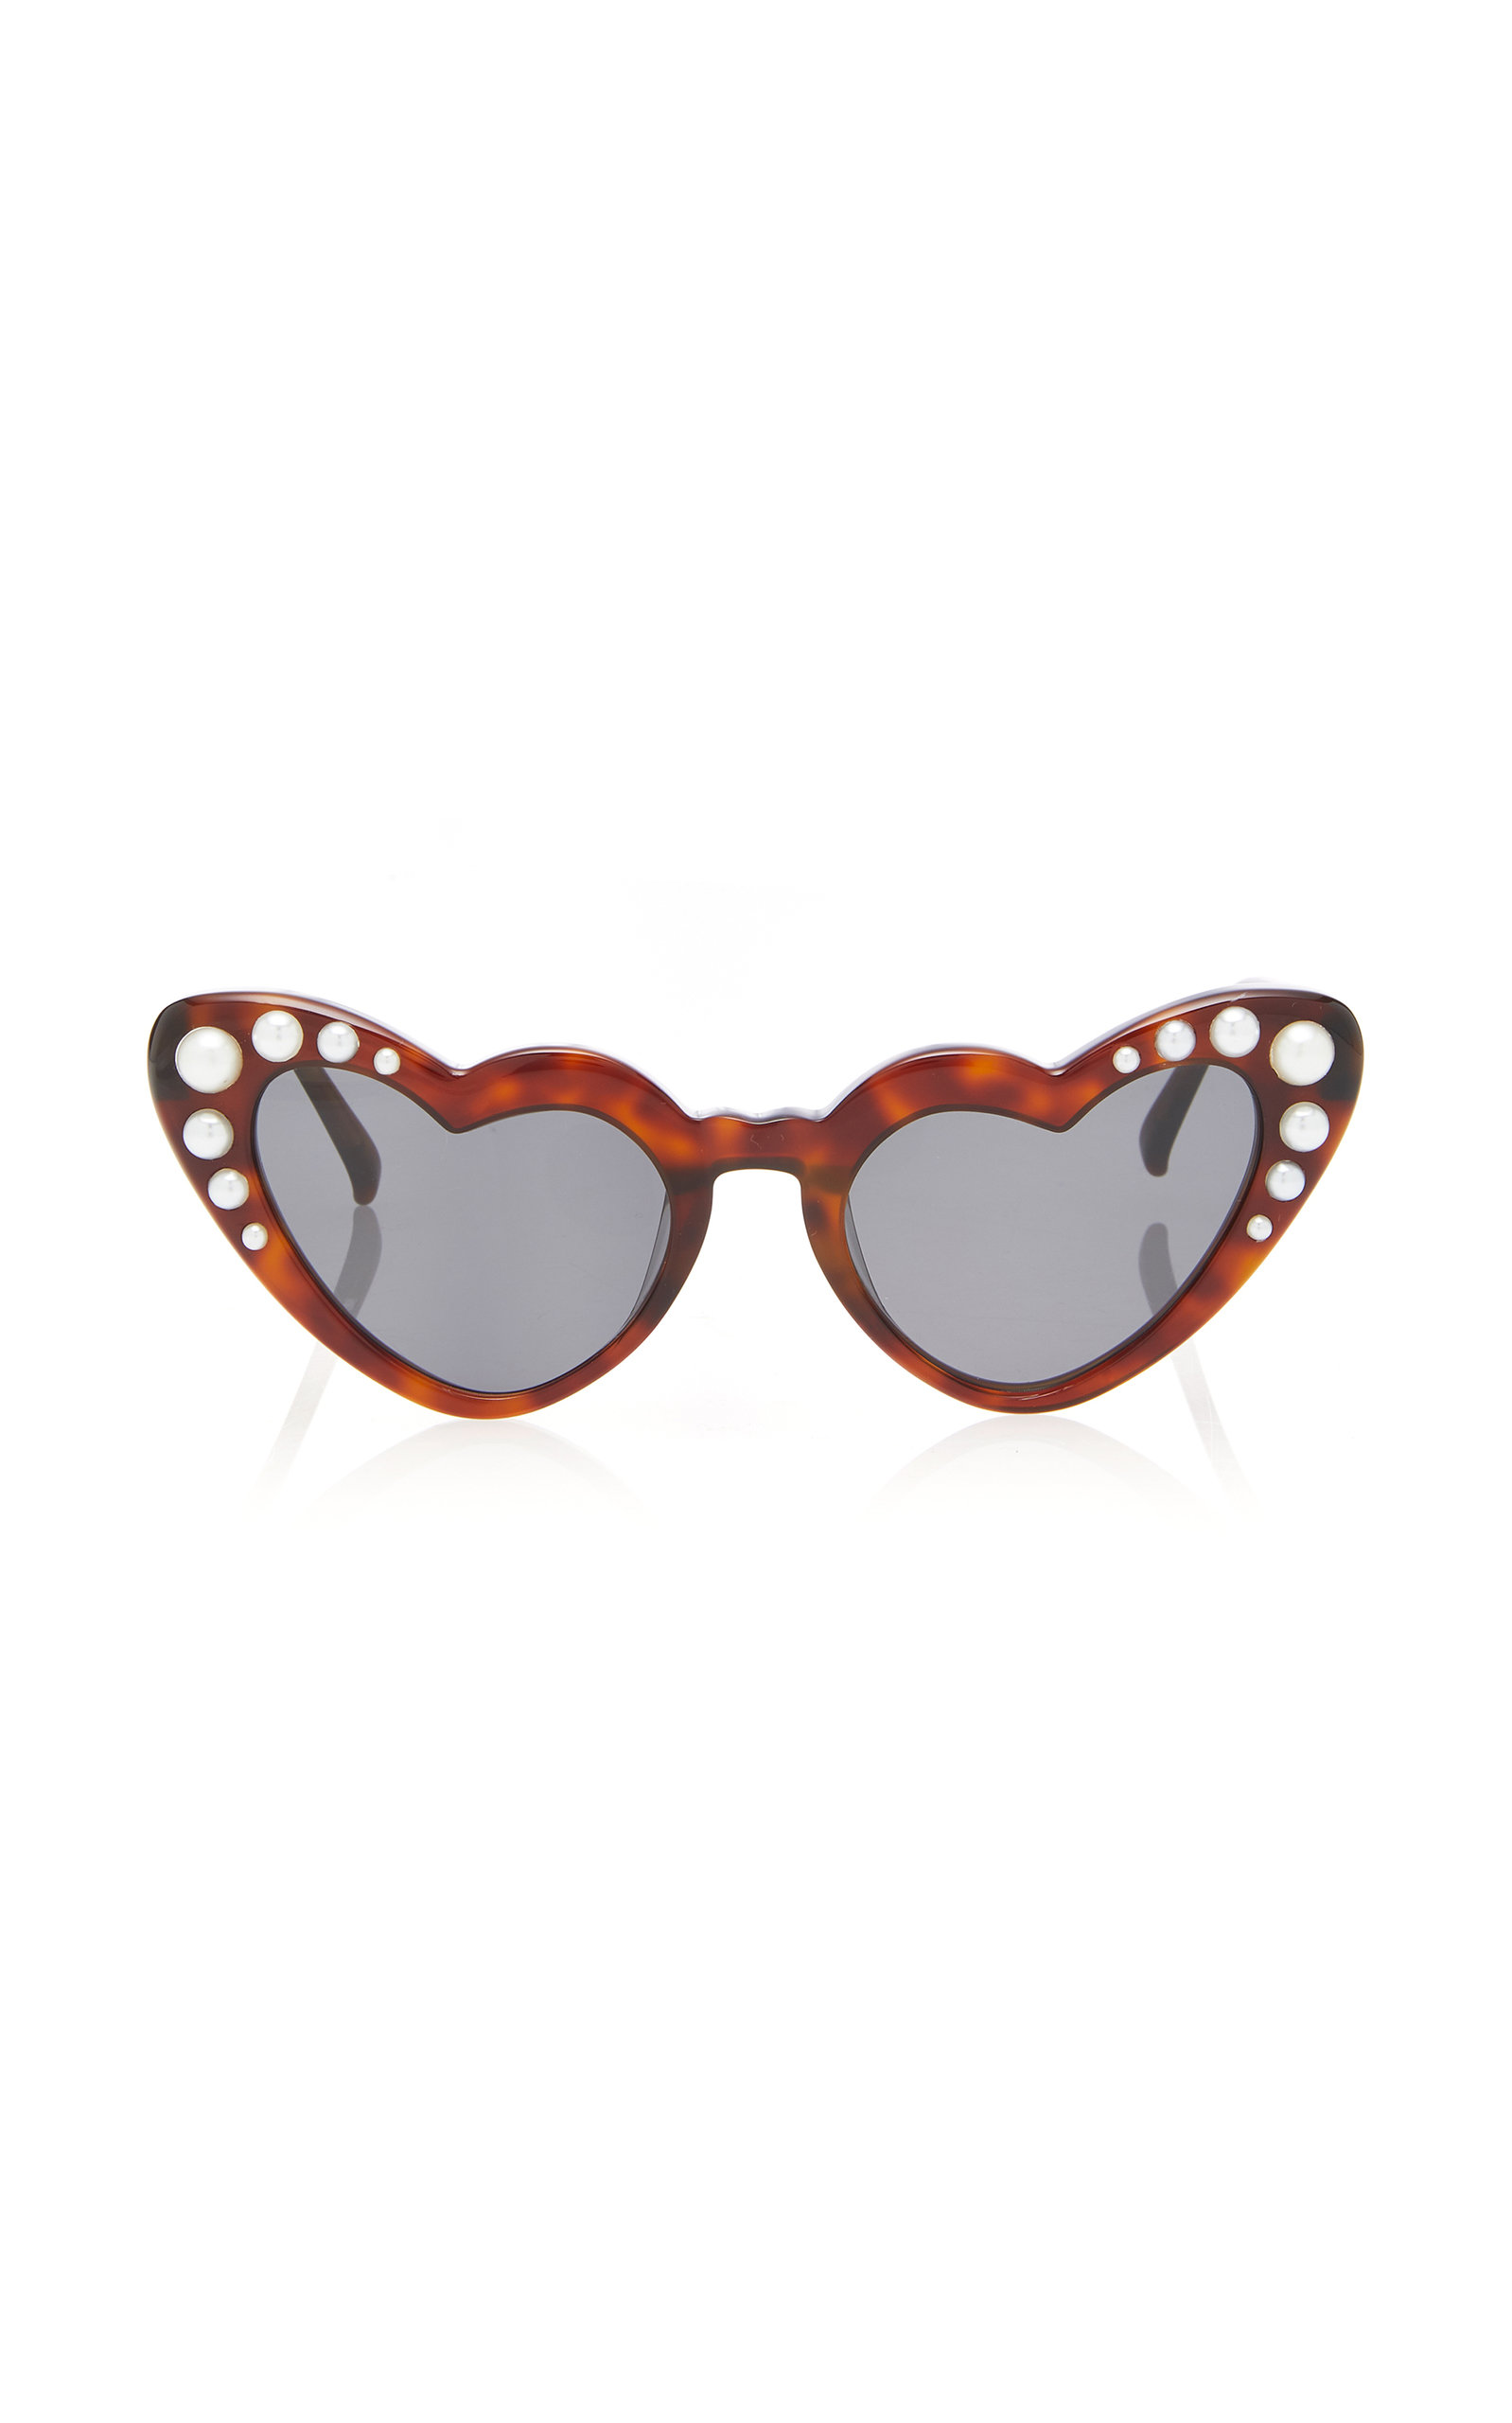 TAKESH M'O EXCLUSIVE JADORE SUNGLASSES